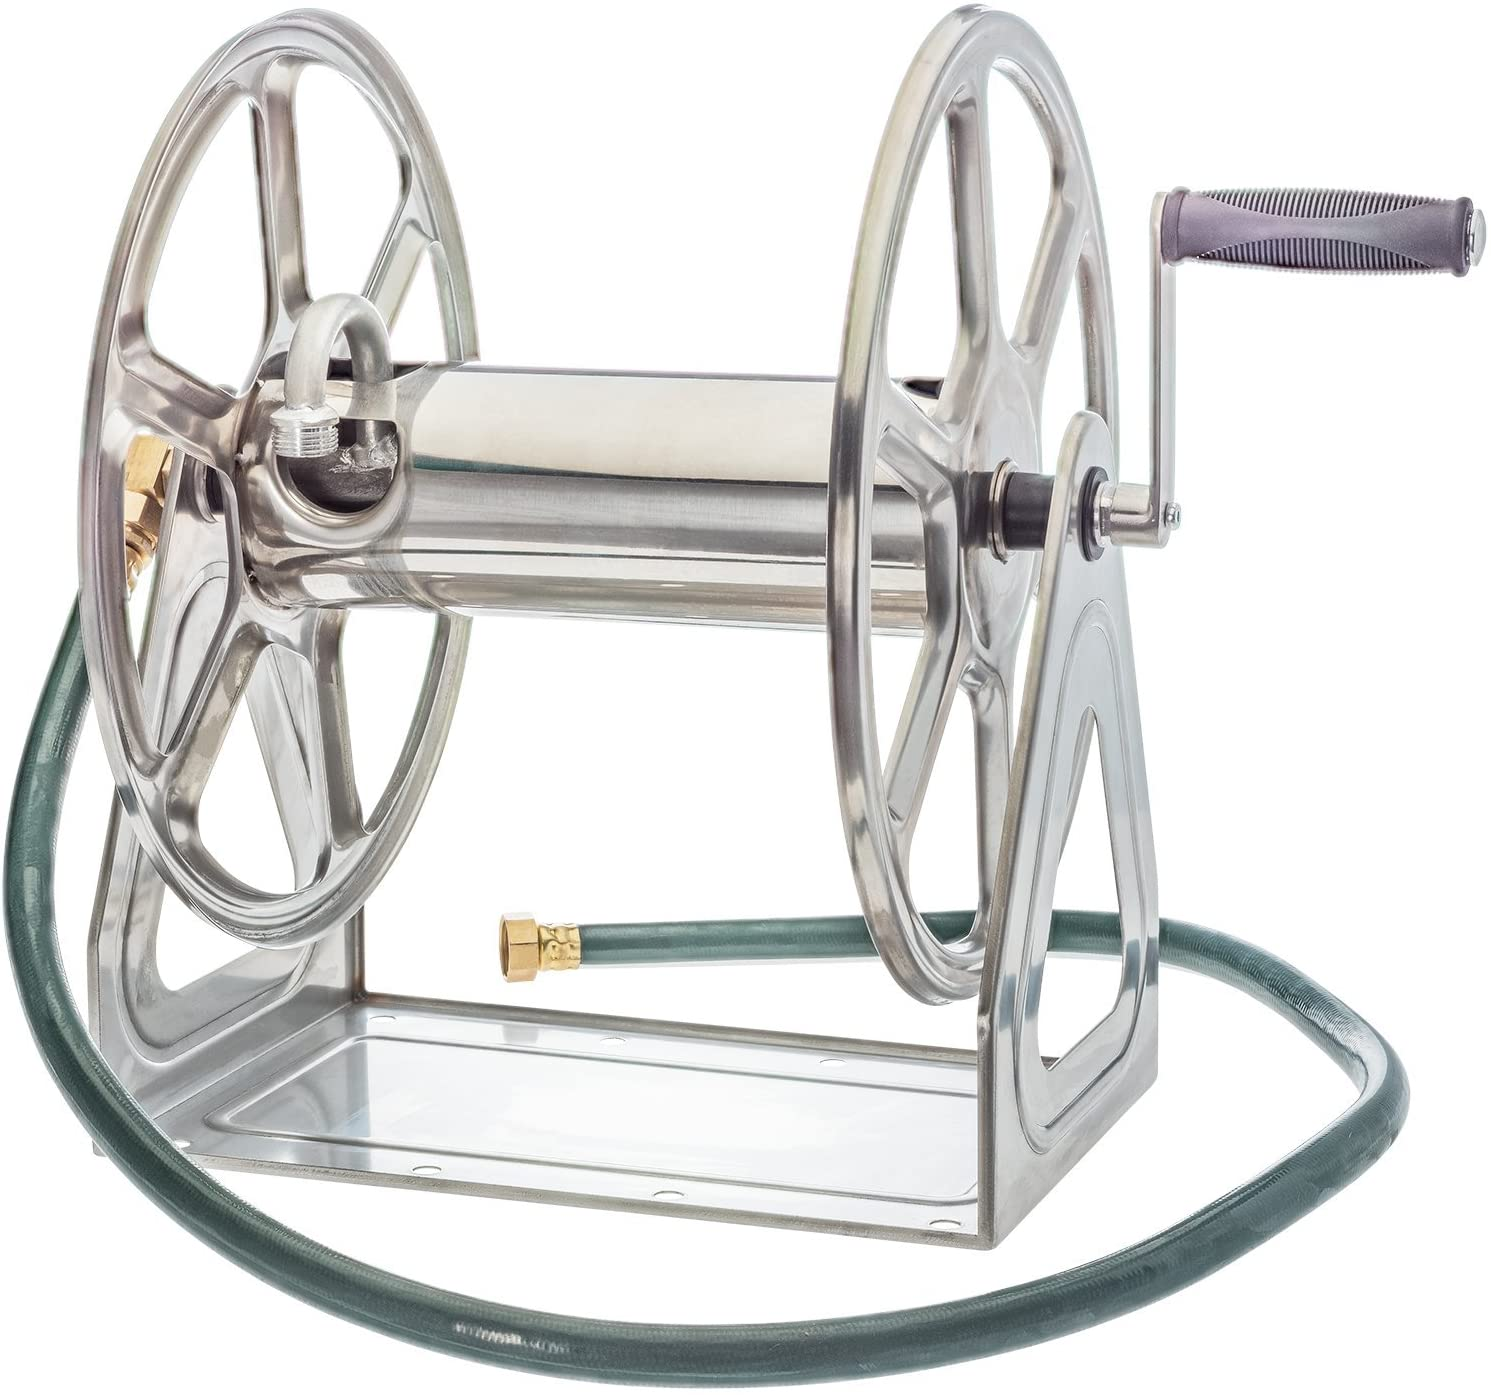 How to roll a garden hose in a manual reel